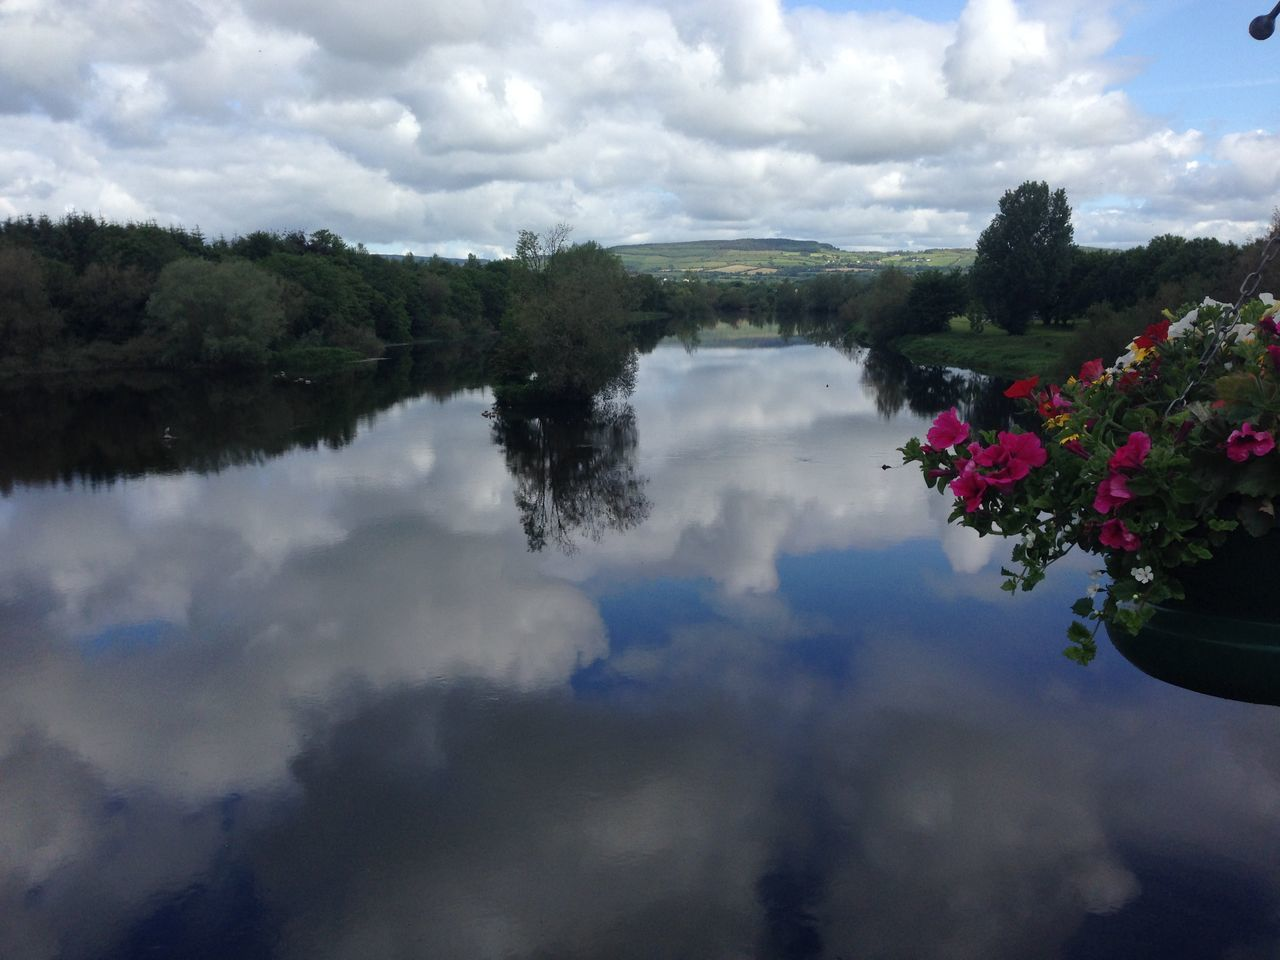 My Year My View- Walking on water floating in clouds Cloud - Sky Reflection Water Shannon River Beauty In Nature Without Edit ^^